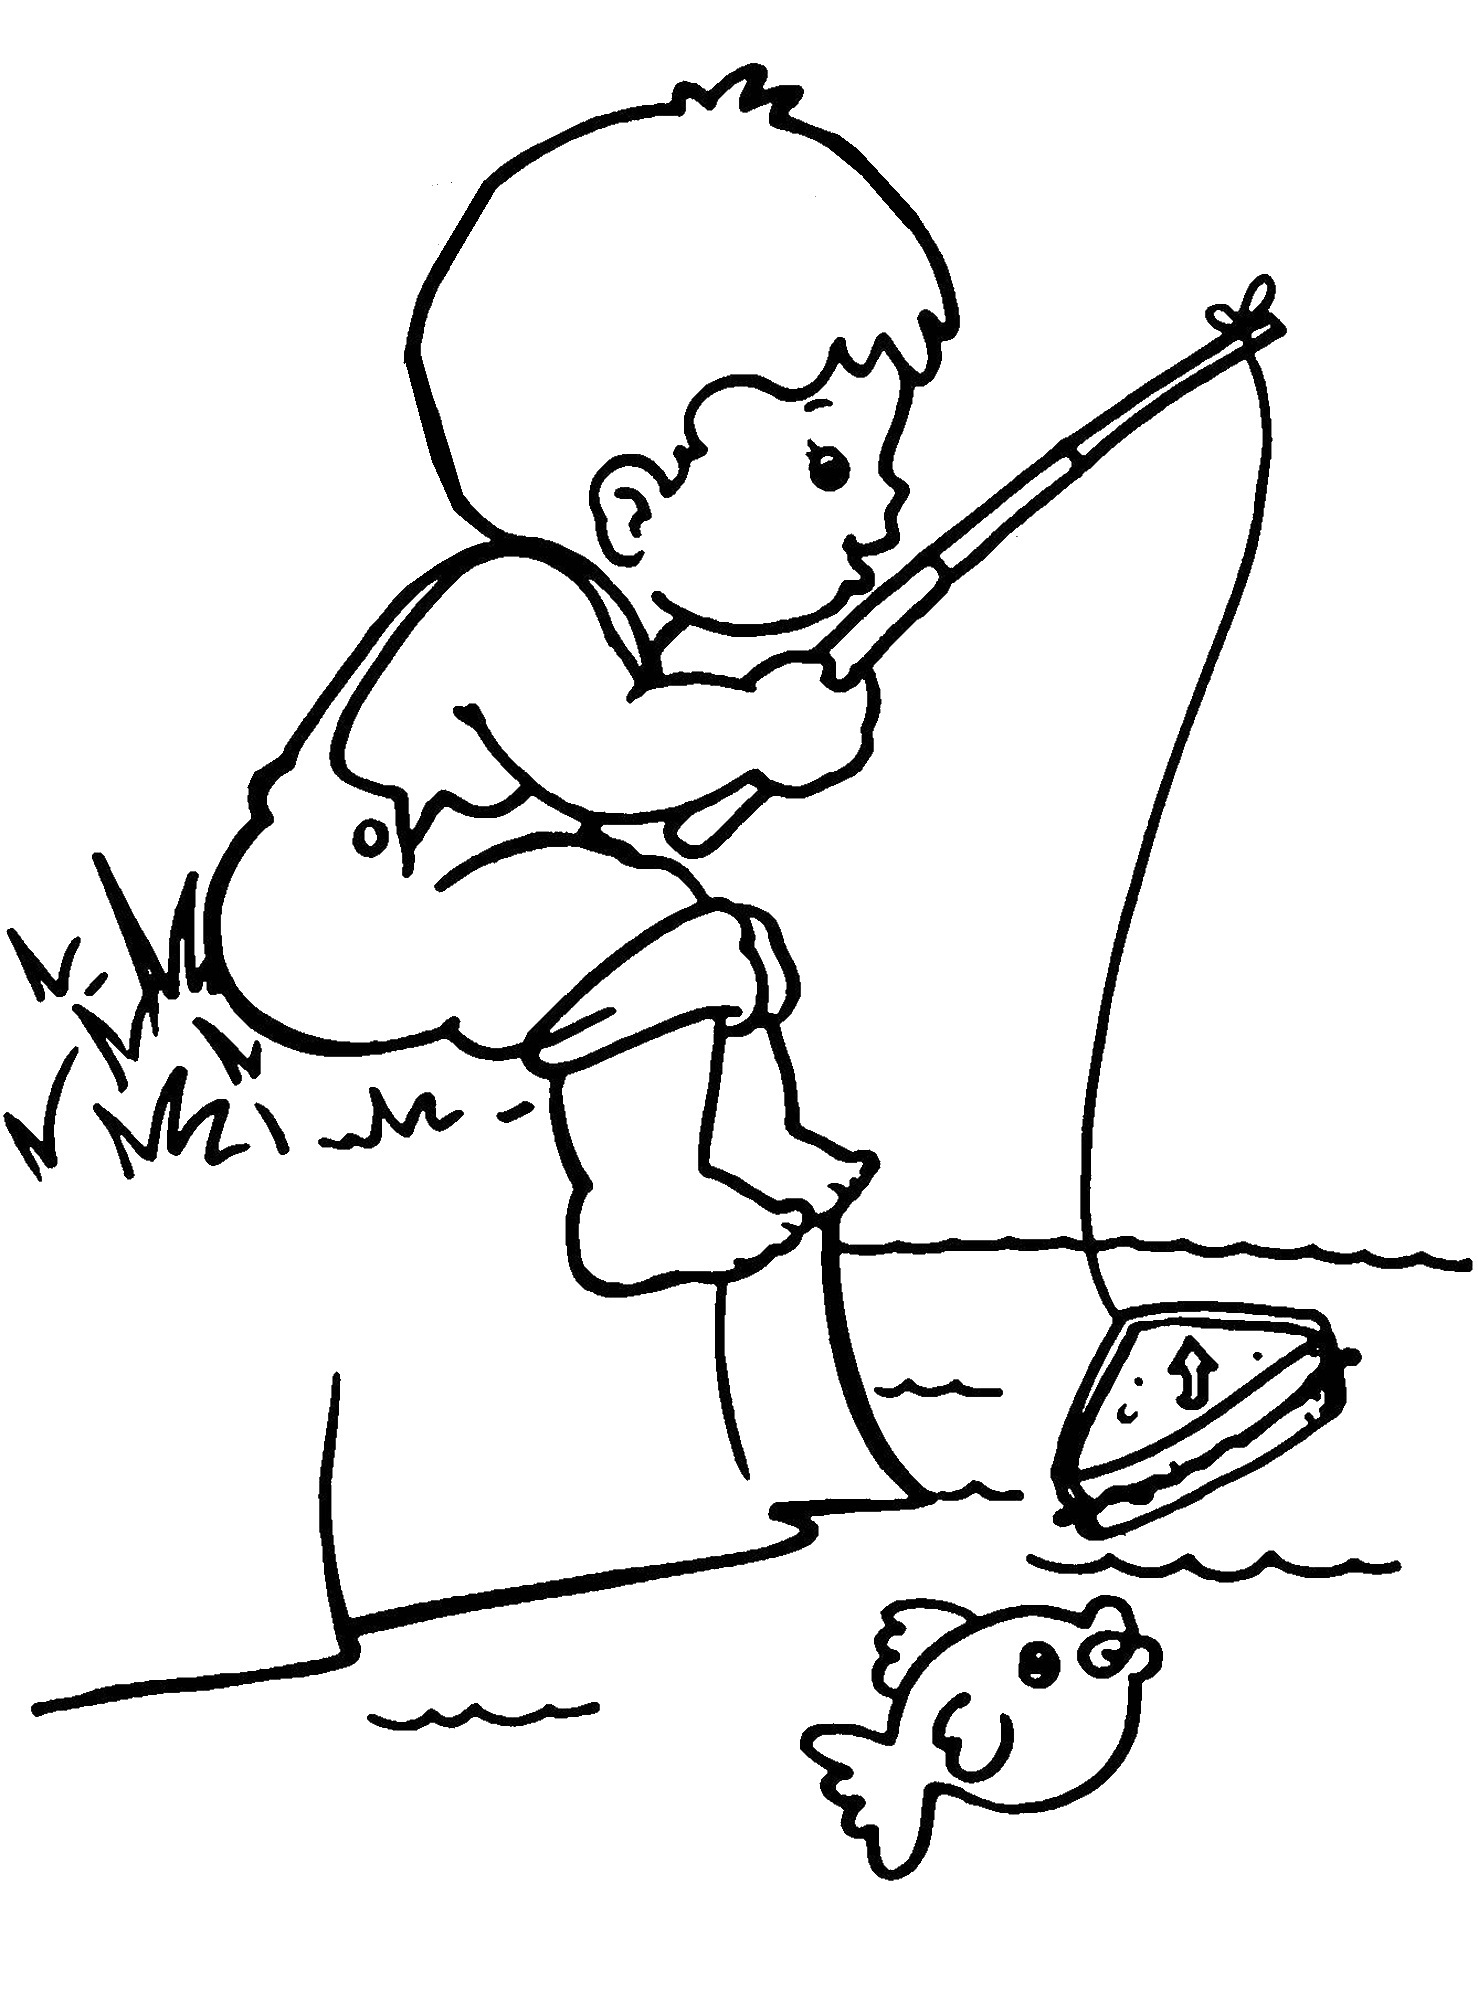 coloring pages for boys free - photo#12